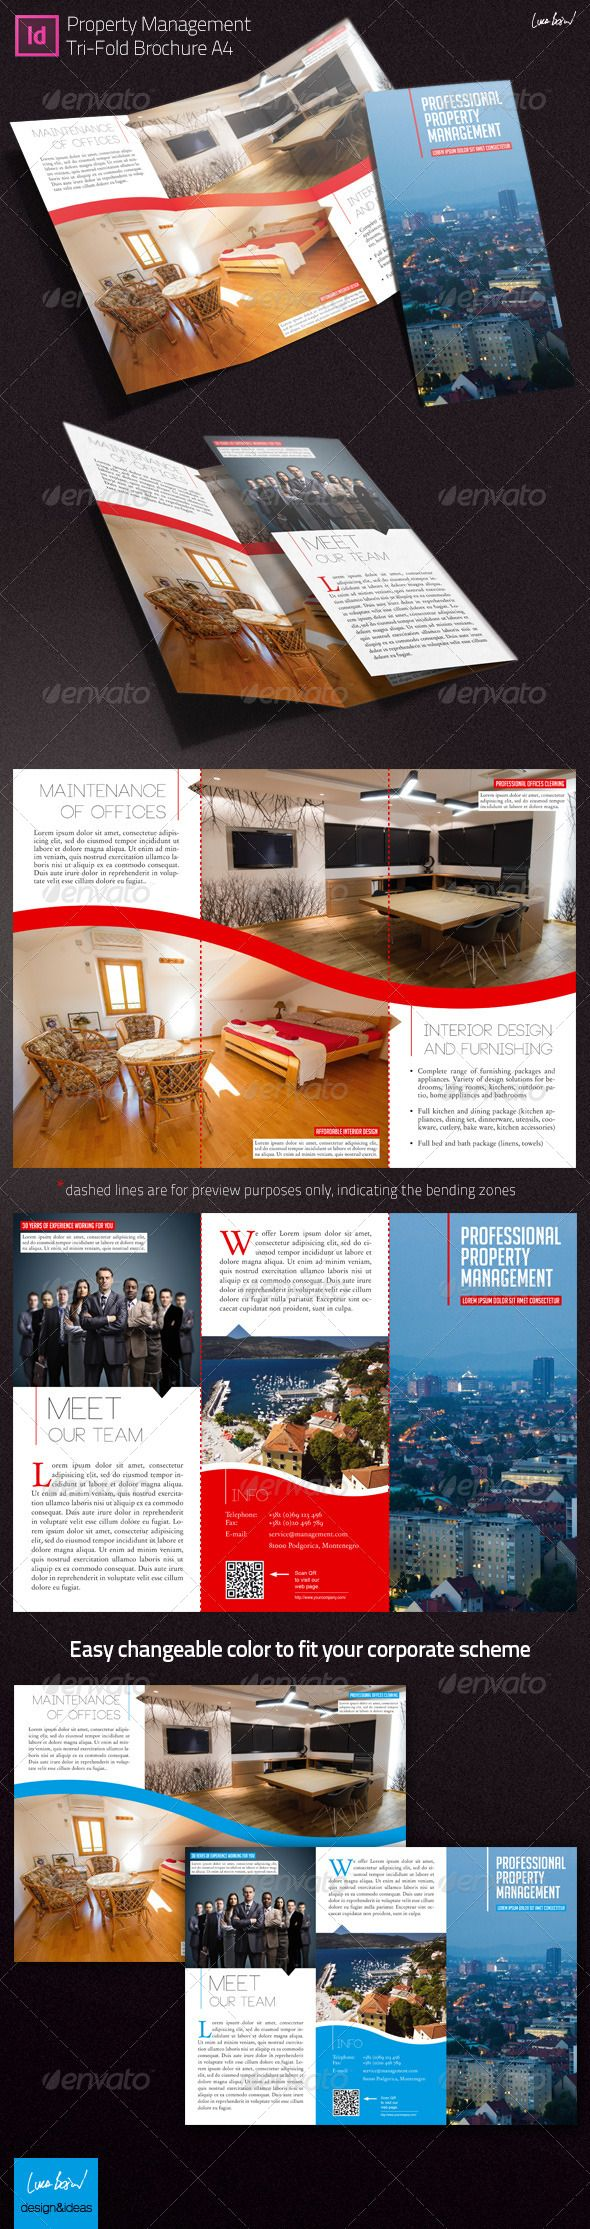 Trifold Brochure: Property Management — InDesign INDD #tri-fold #corporate • Available here → https://graphicriver.net/item/trifold-brochure-property-management/4054802?ref=pxcr